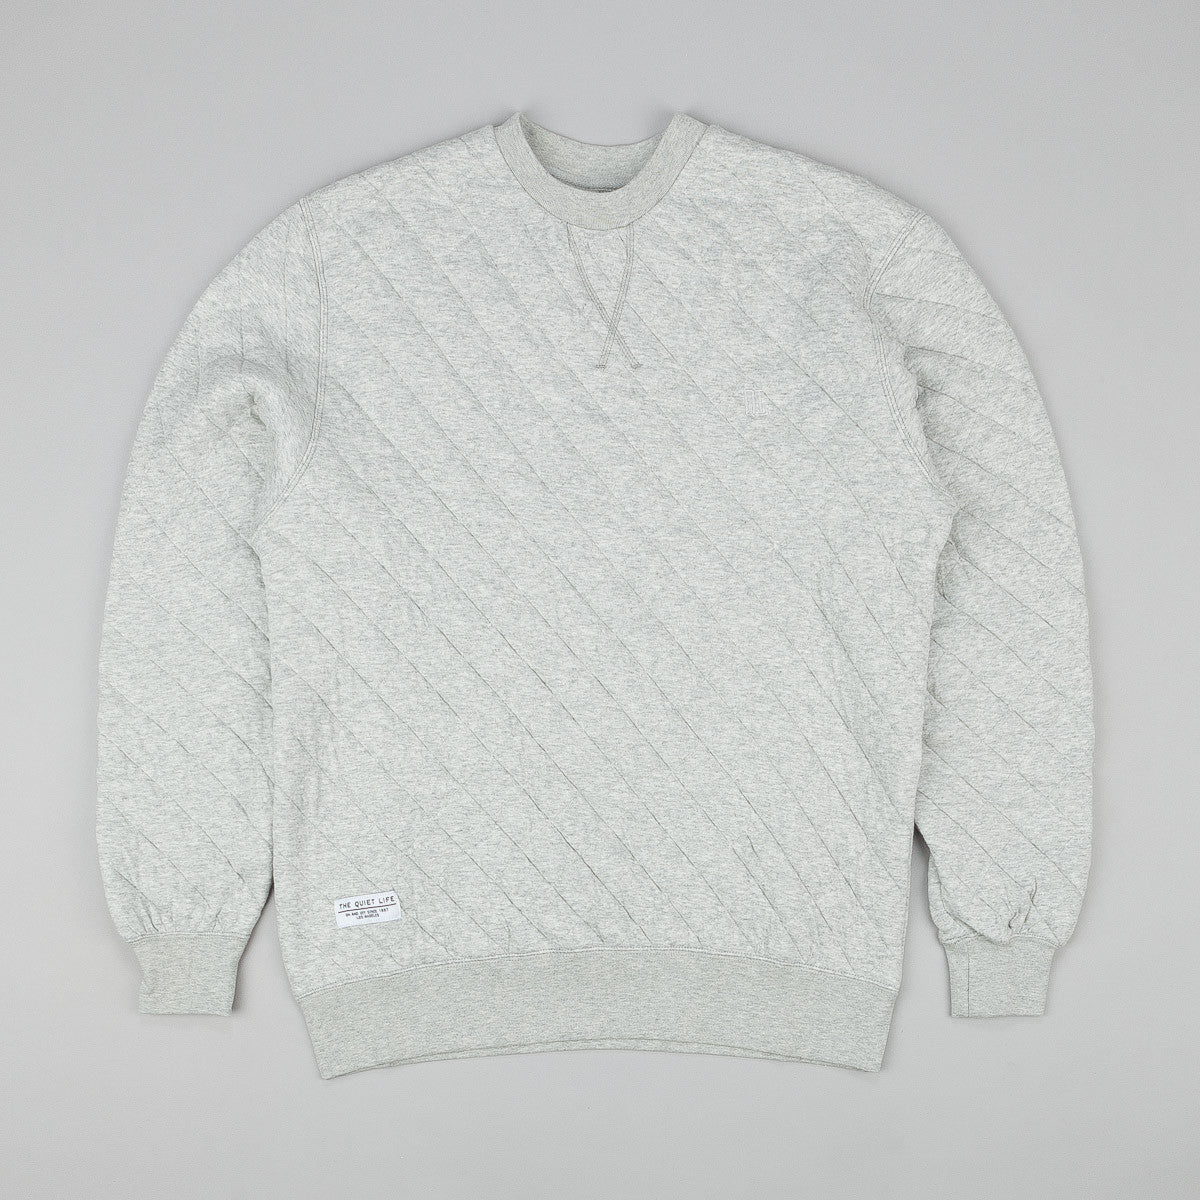 The Quiet Life Quilted Fleece Sweatshirt